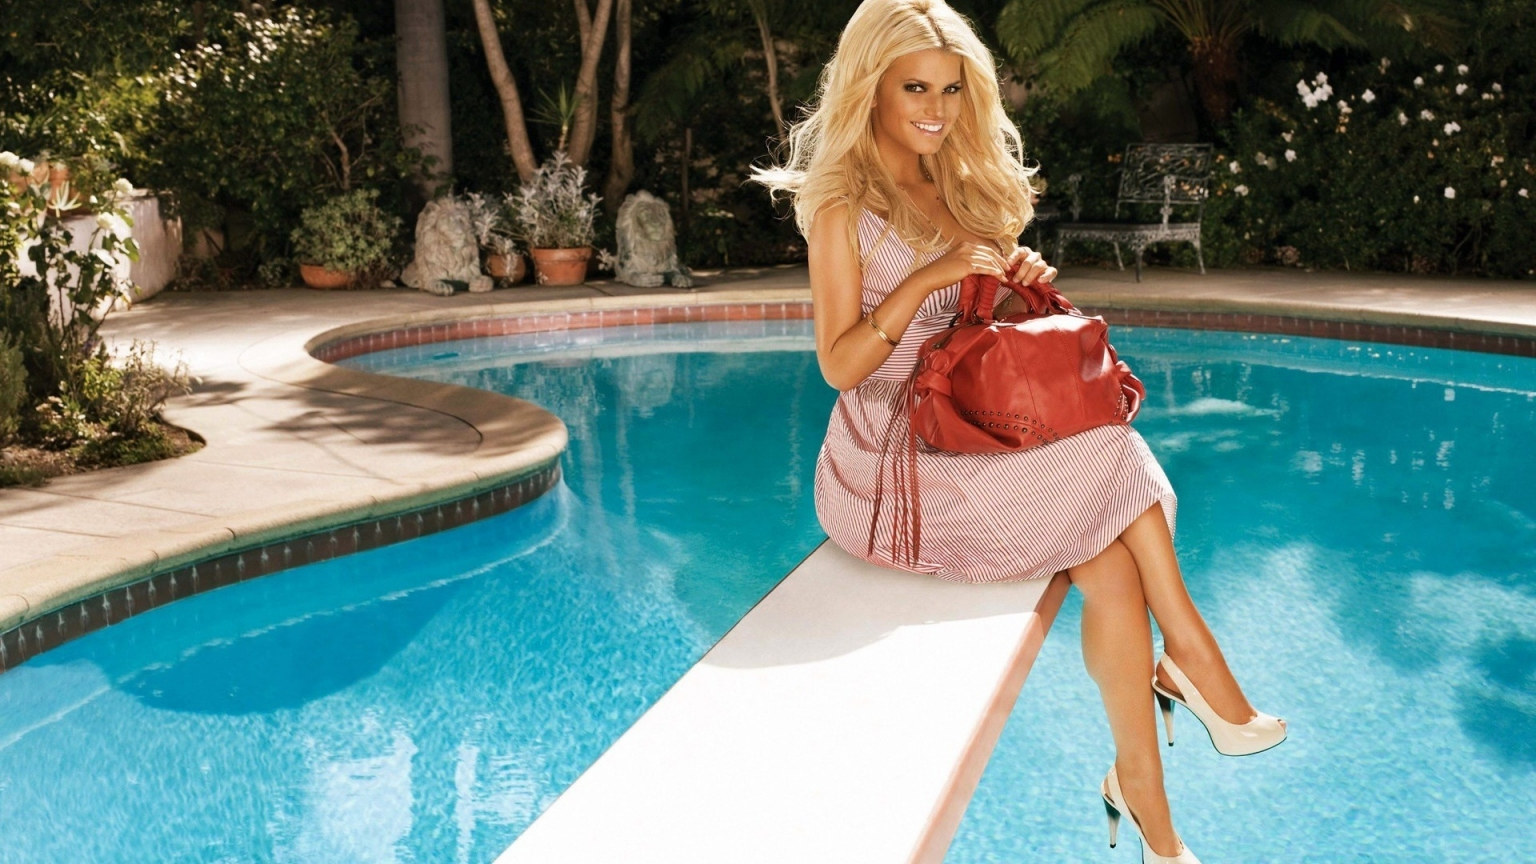 Jessica Simpson for 1536 x 864 HDTV resolution